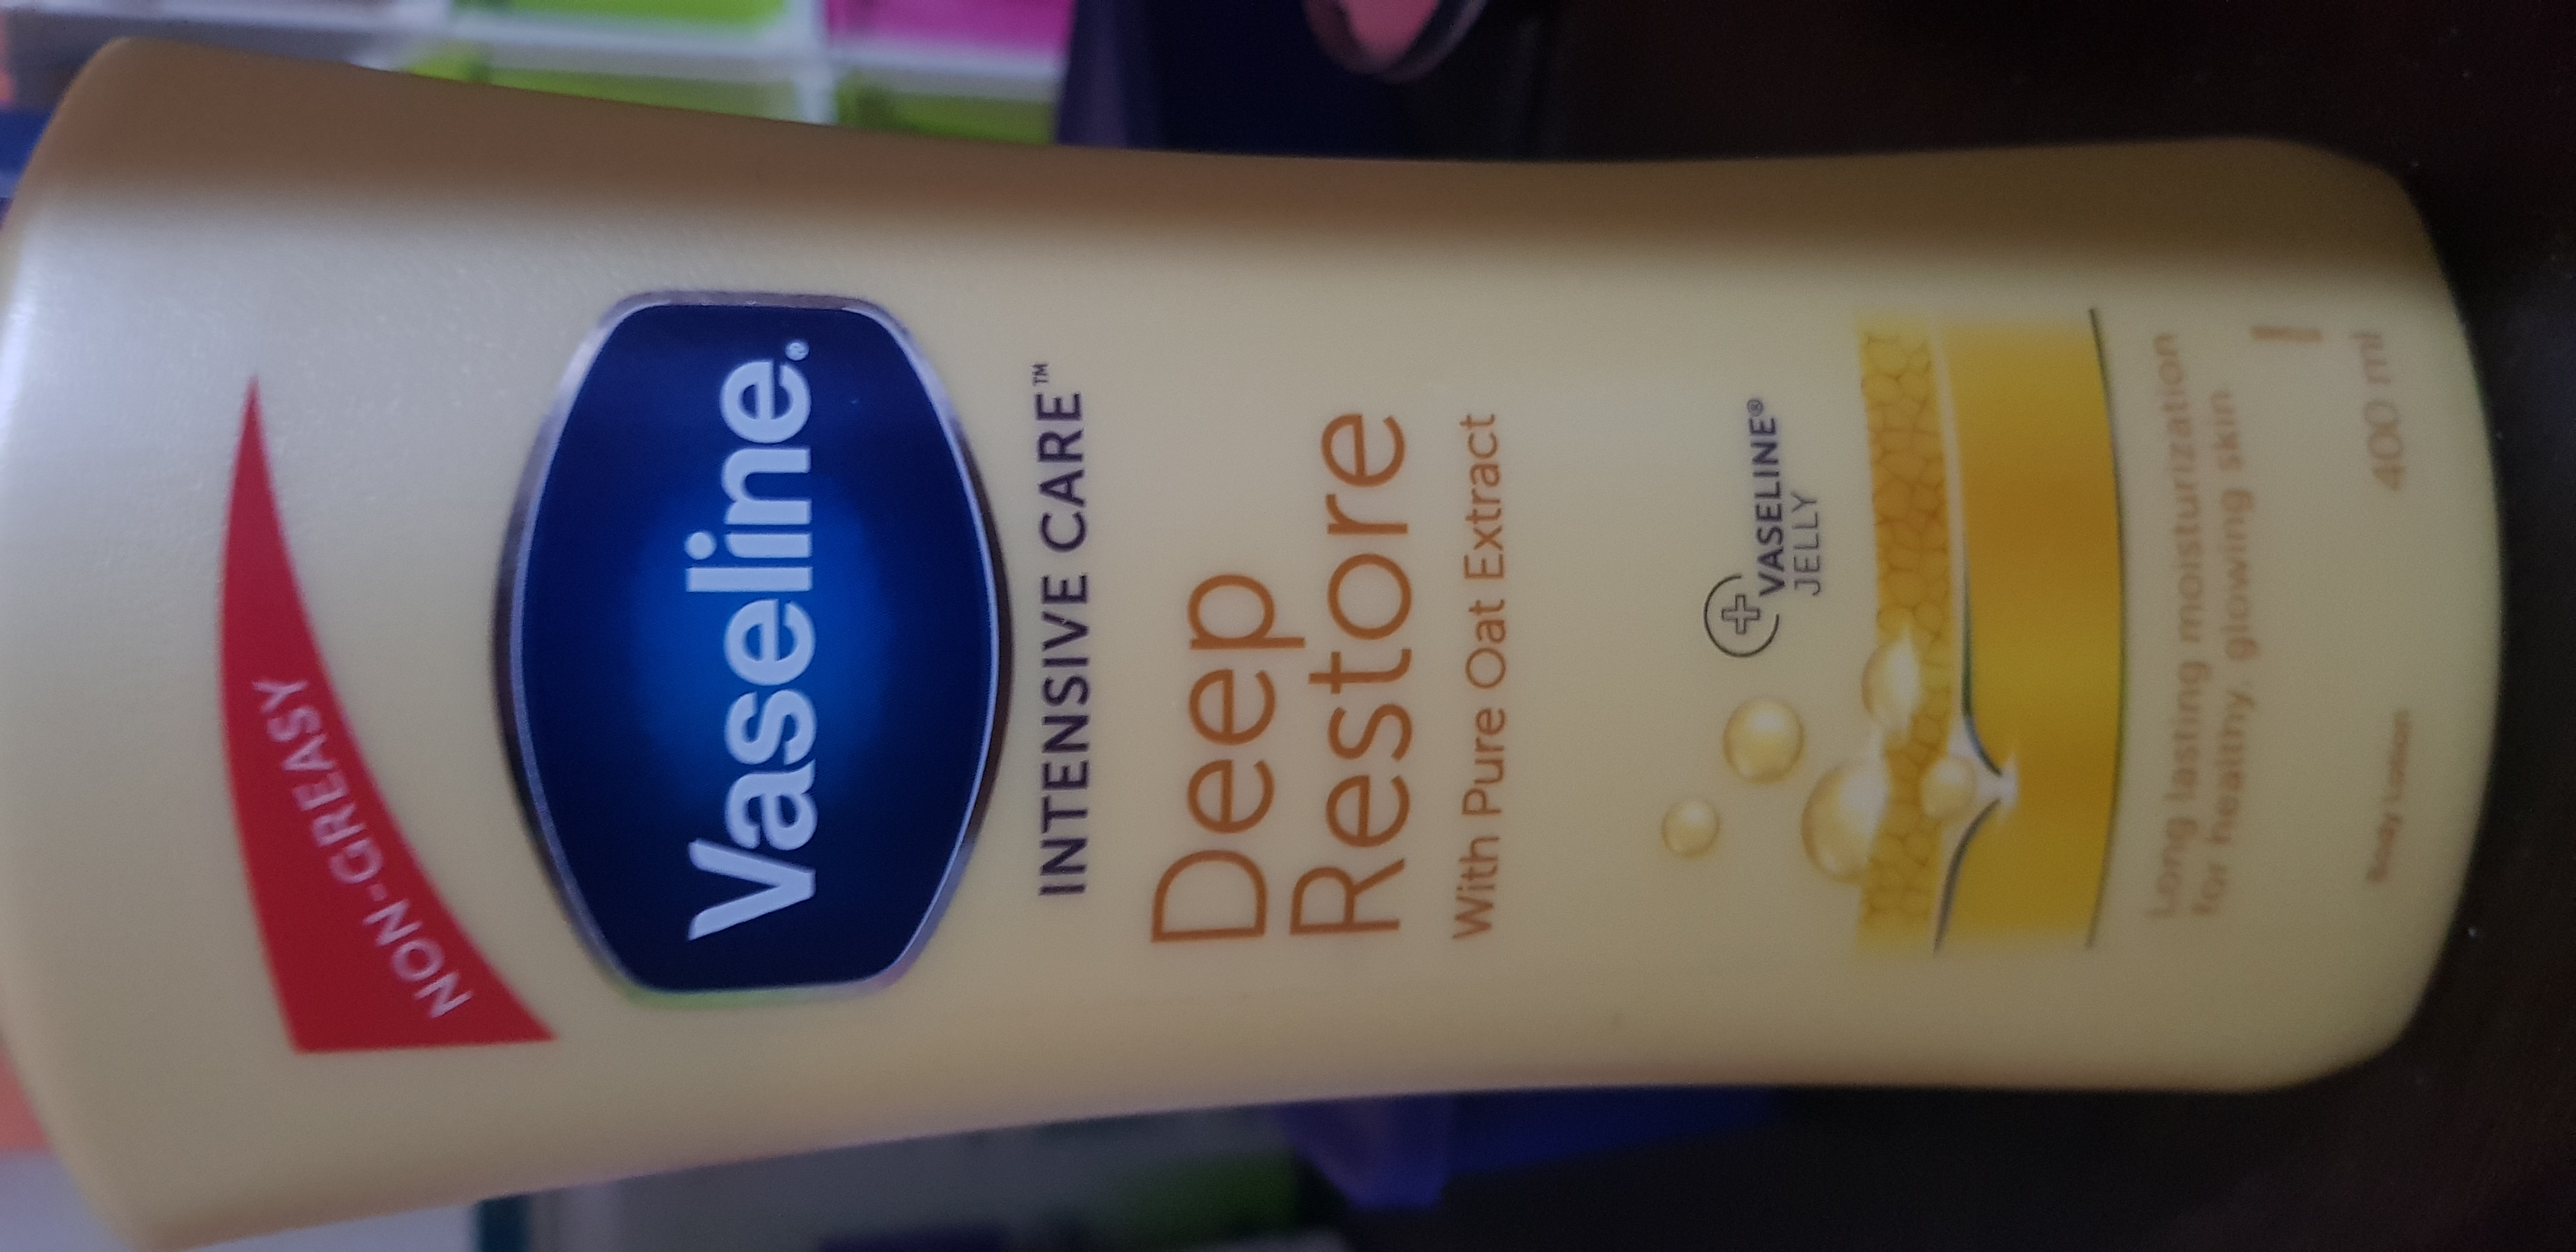 Vaseline Intensive Care Deep Restore Body Lotion-Good-By avyuktha